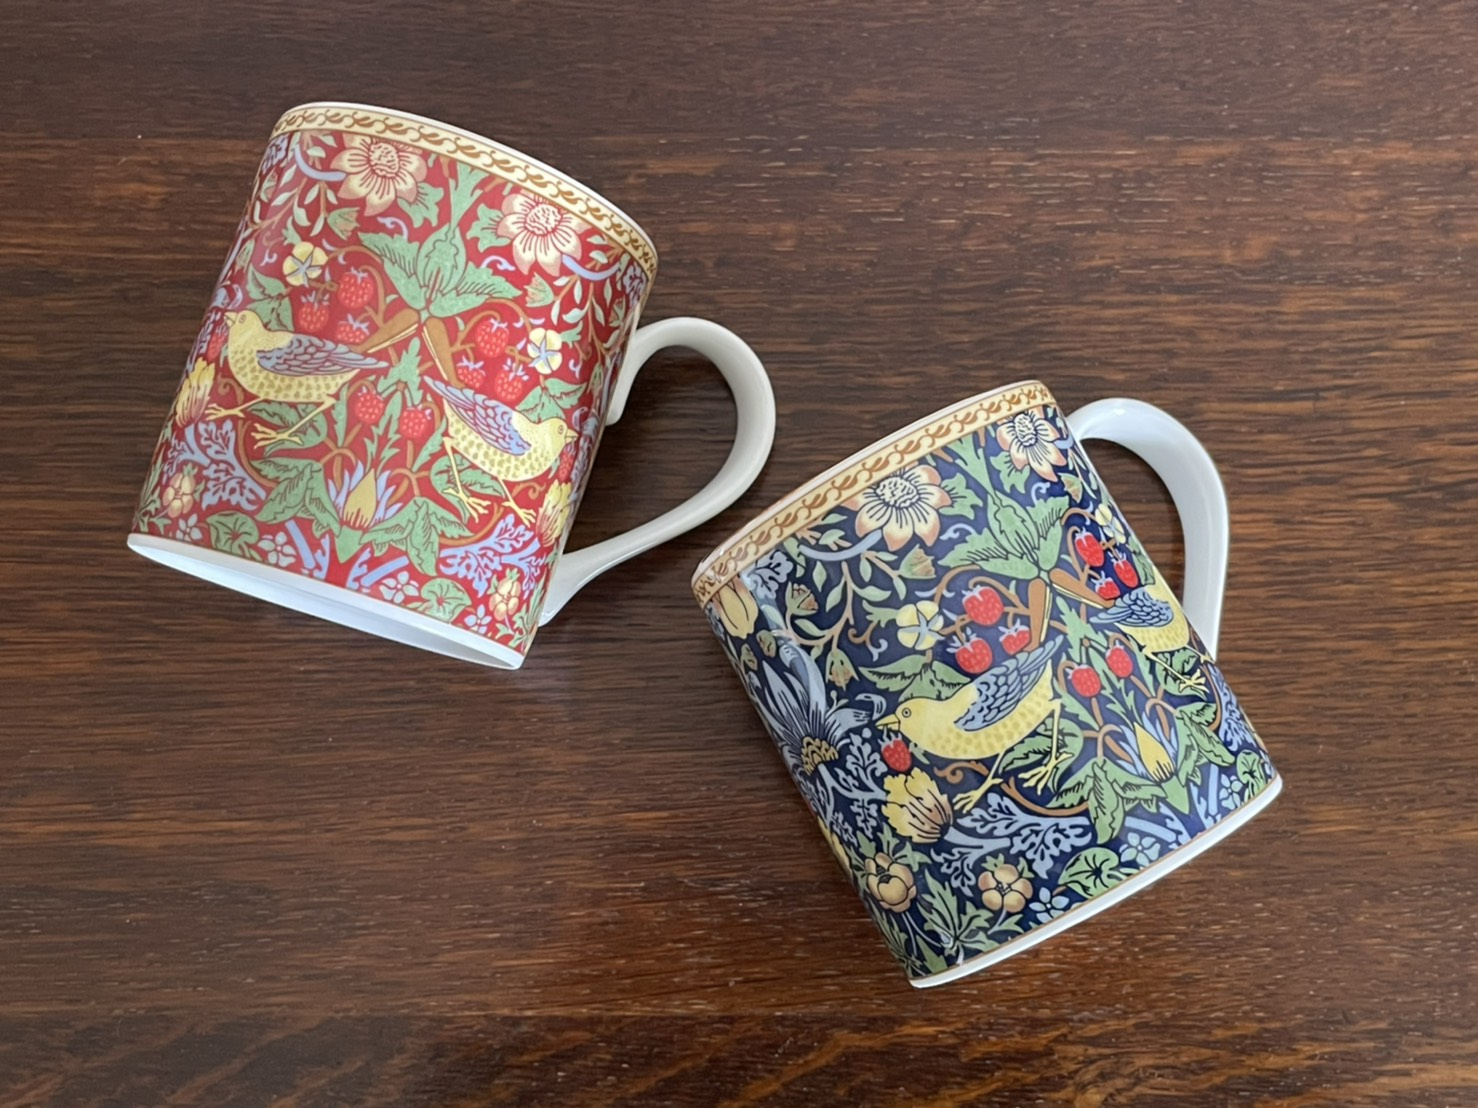 William Morris Mug & Tankard Mug 英国製のマグカップ